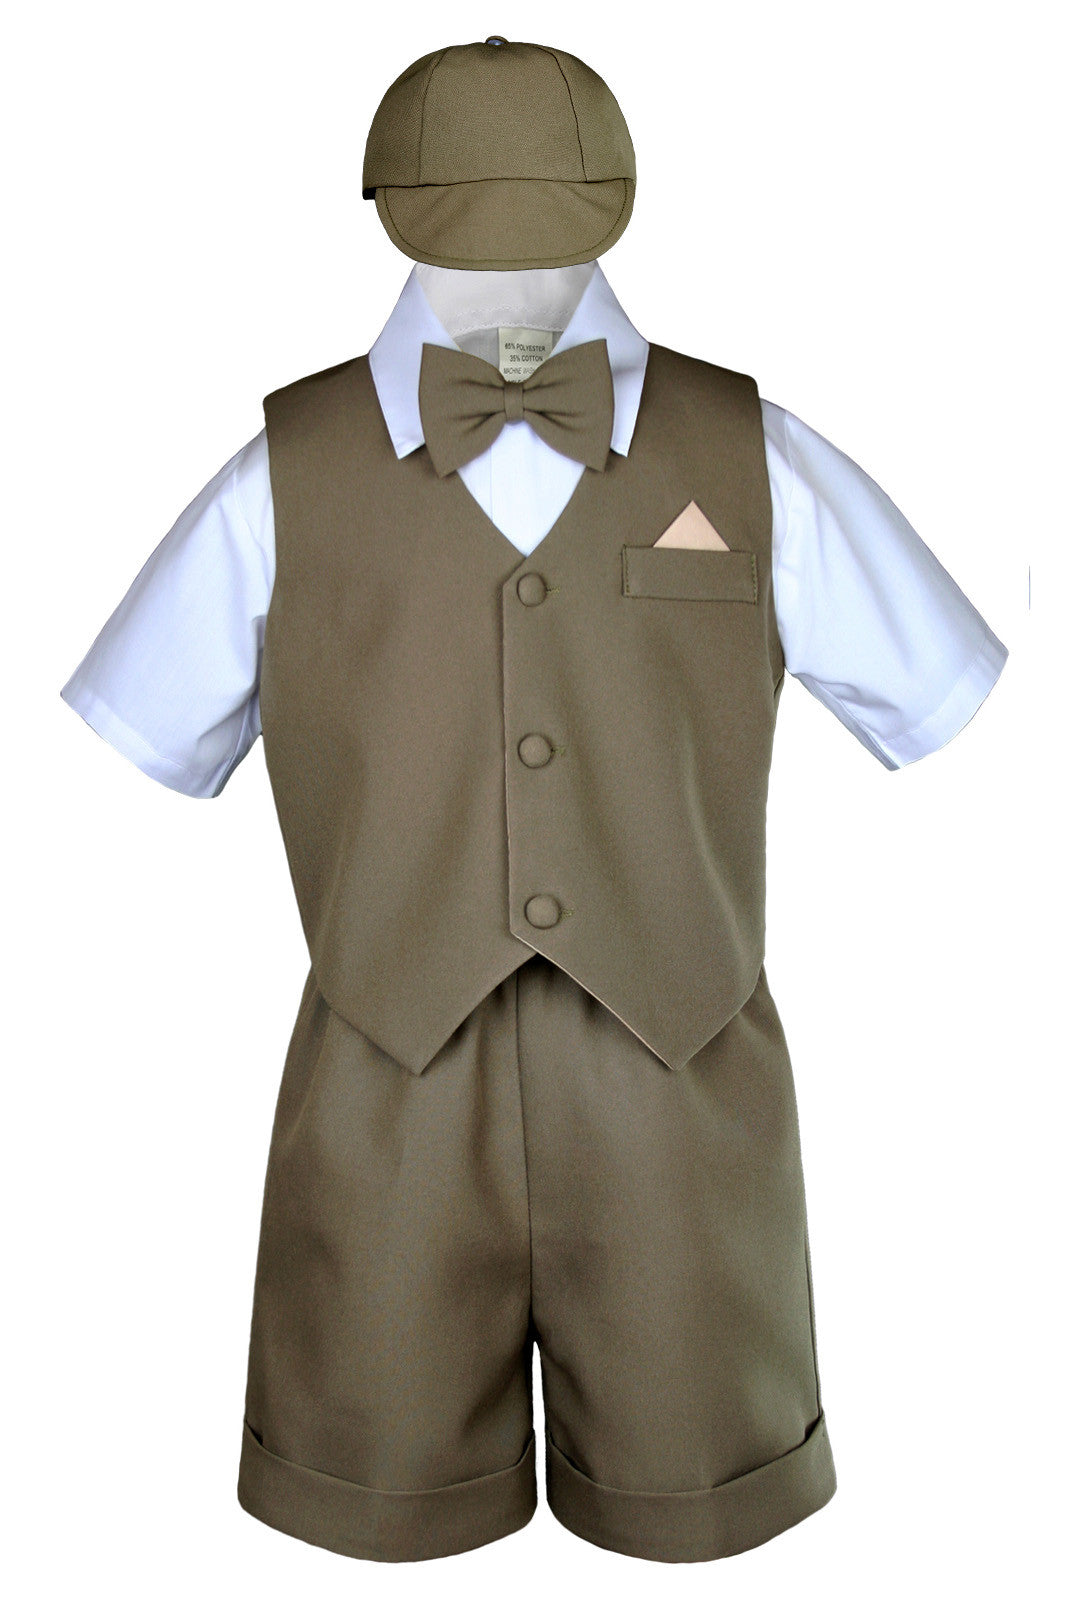 New Baby Boy /& Toddler Formal Vest shorts Bowtie Hat Suit Outfits 0M 4T Khaki